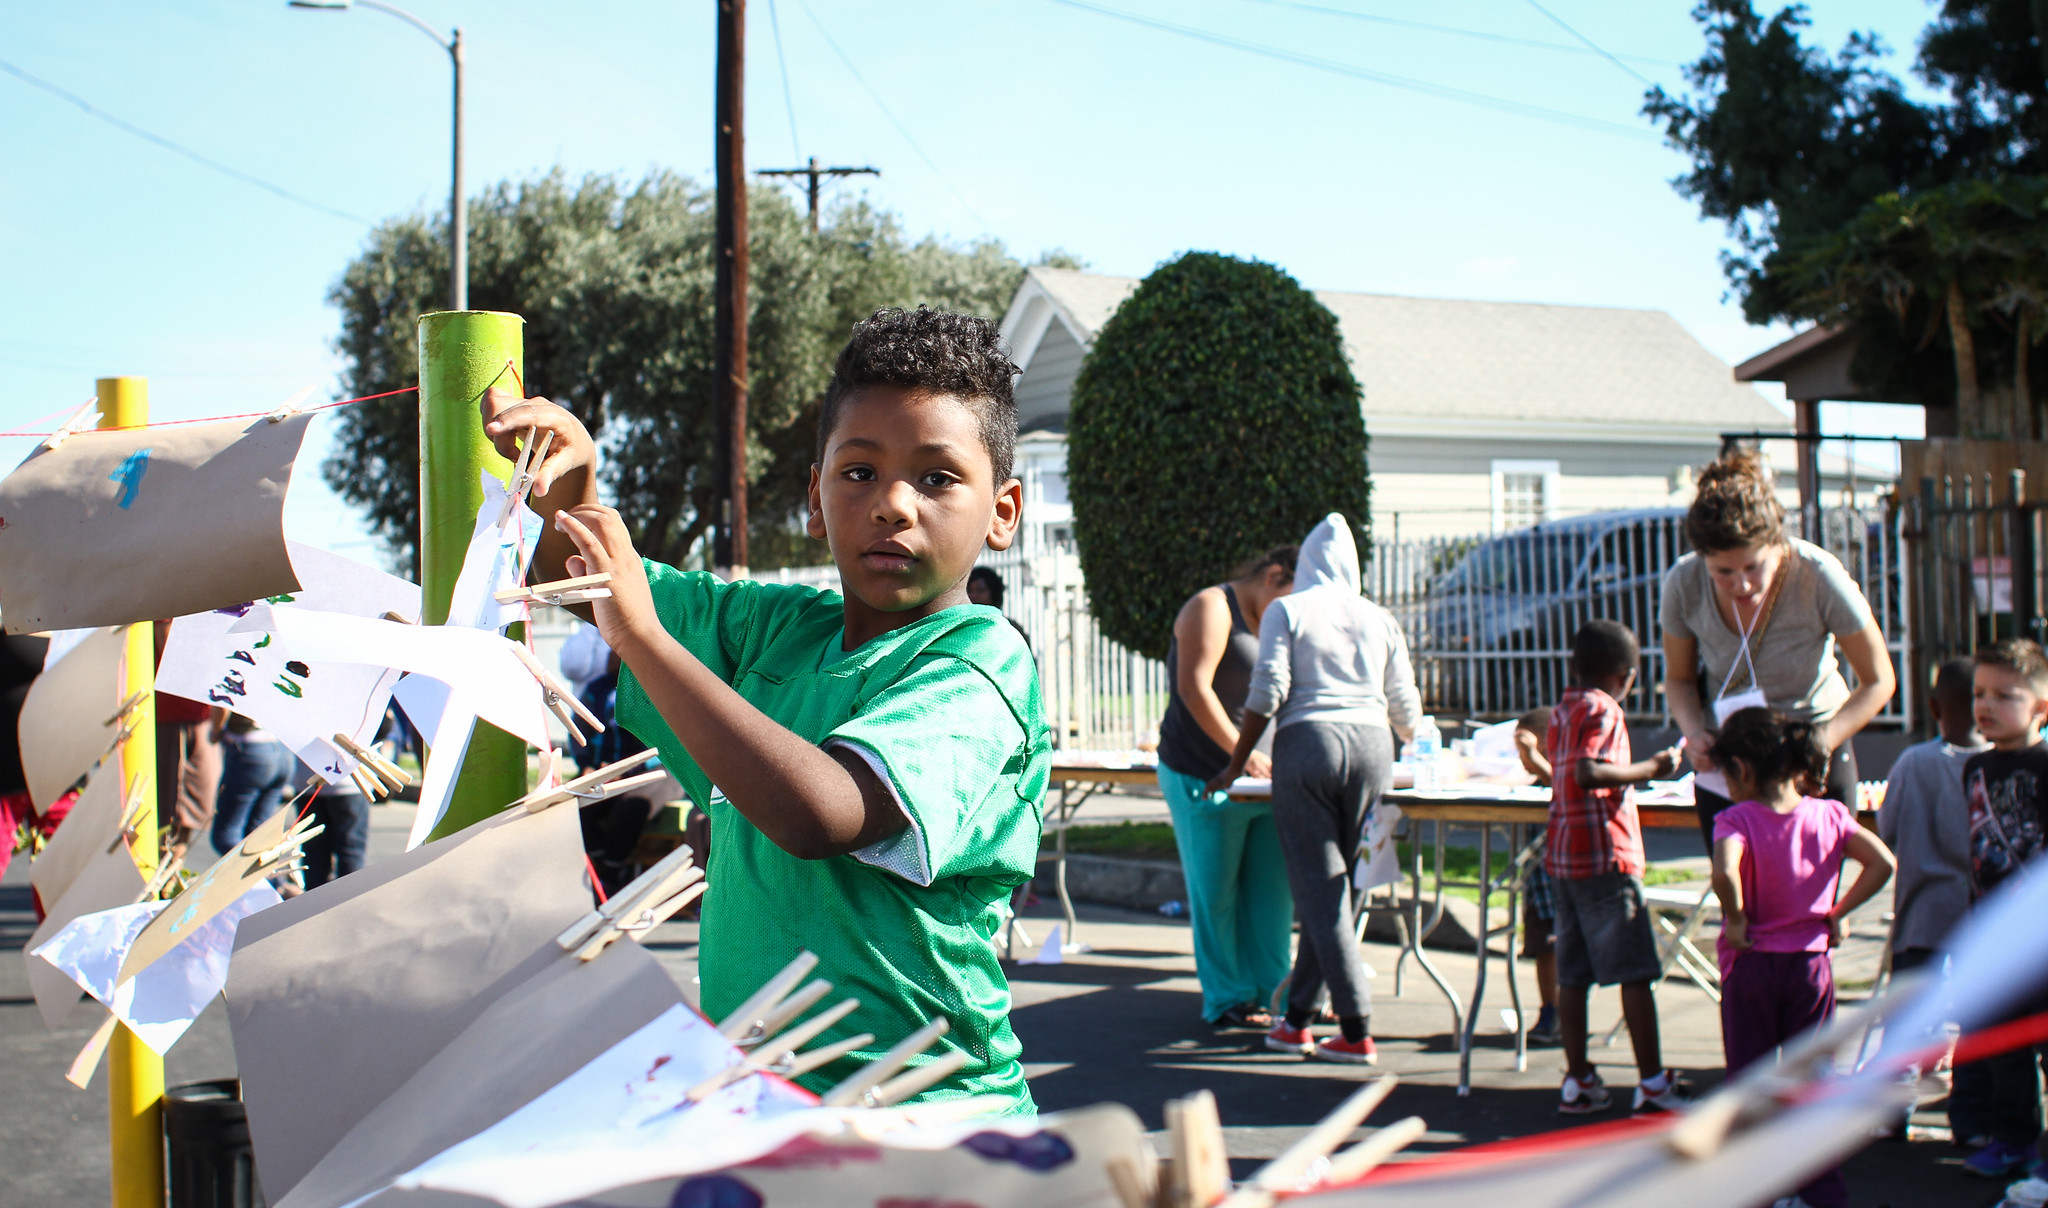 Adopt-a-Lot - The Adopt-a-Lot Pilot Program is a citywide program that was approved in December of 2018 by the City of Los Angeles. The program allows community residents and organizations to adopt up to 10 city-owned vacant lots across Los Angeles.